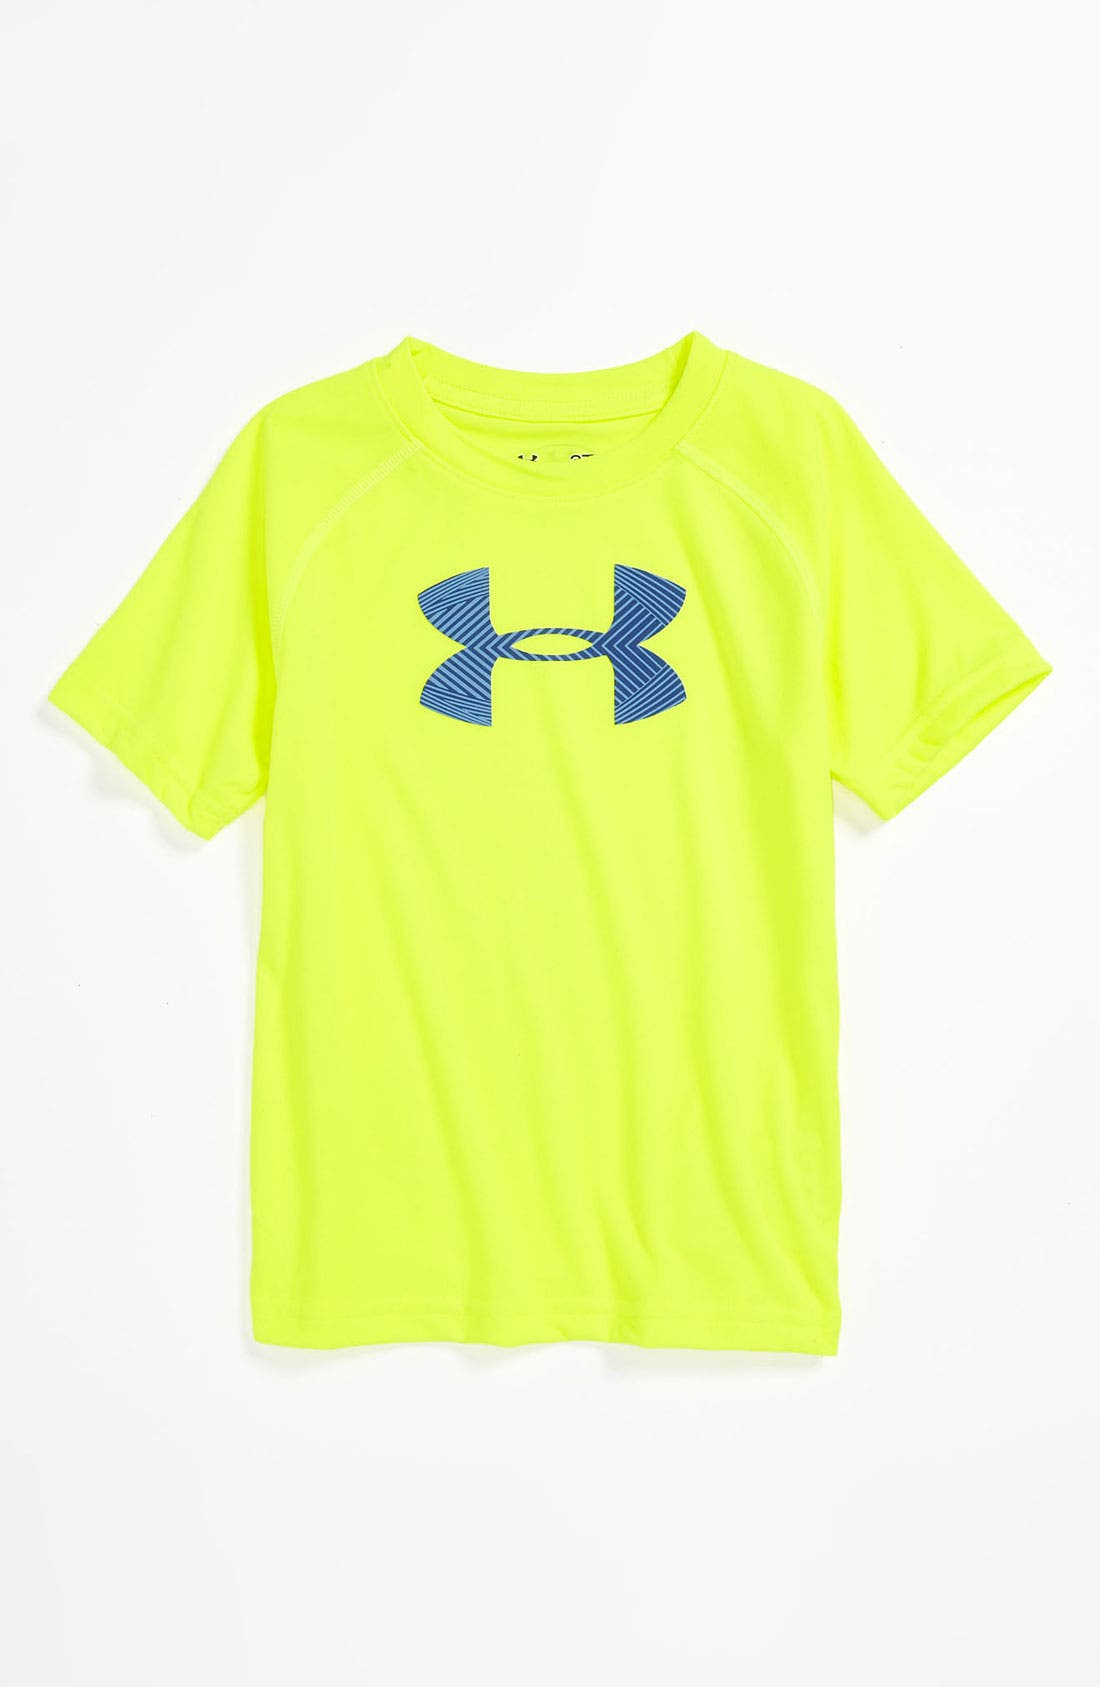 Alternate Image 1 Selected - Under Armour Neon Logo T-Shirt (Infant)